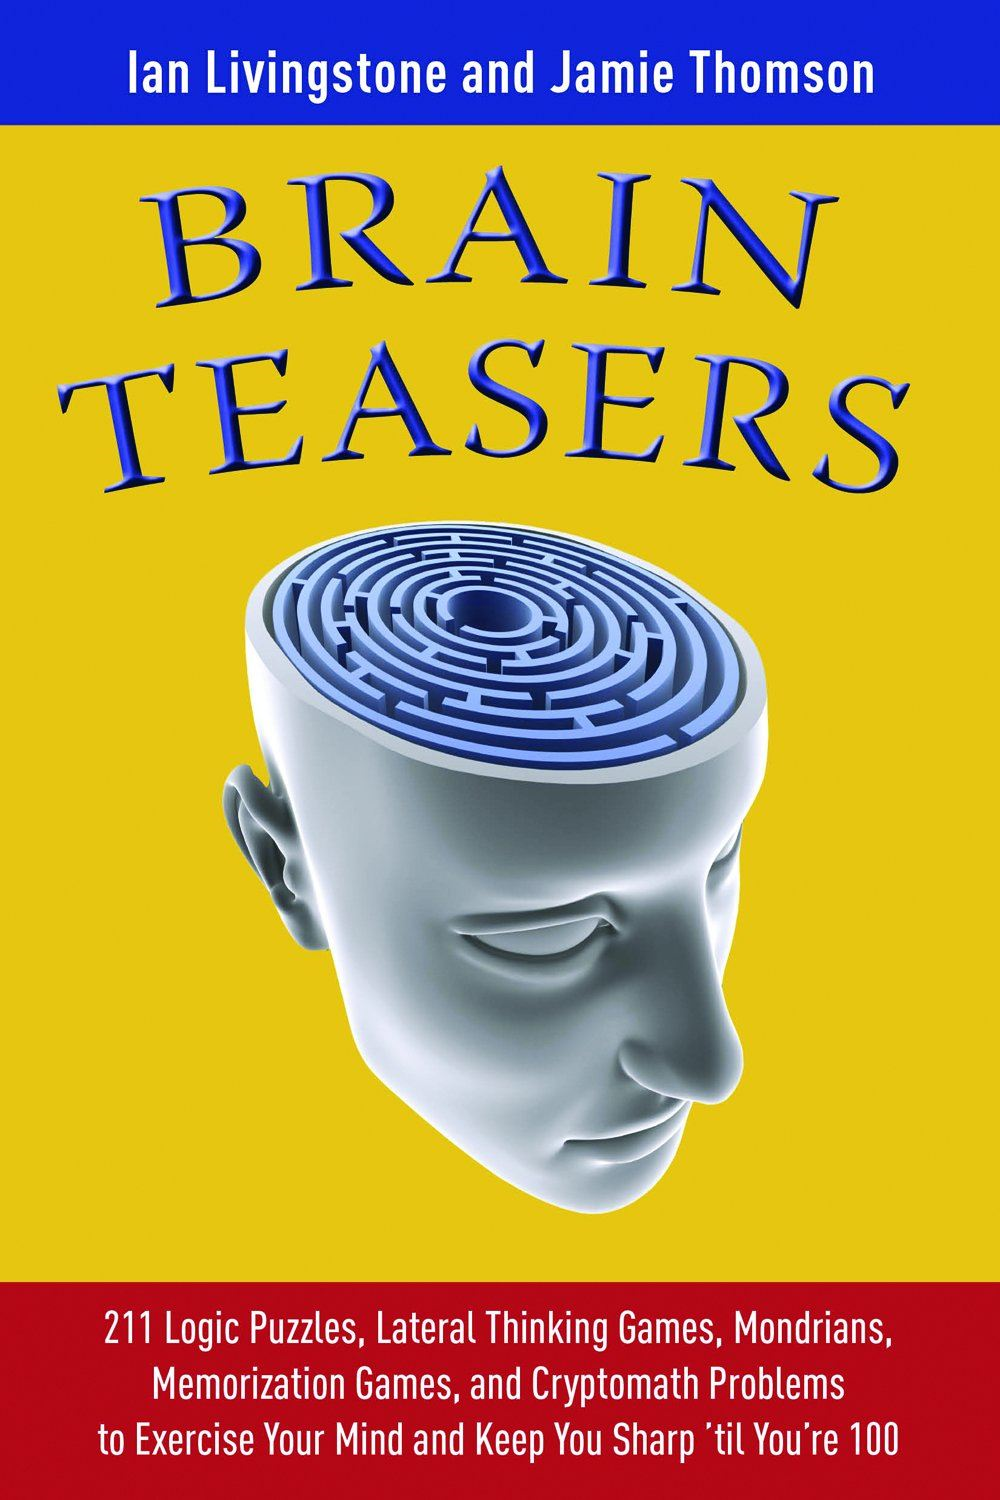 Brain Teasers: 211 Logic Puzzles Lateral Thinking Games Mondrians Memorization Games and Cryptomath Problems to Exercise Your Mind and Keep You Sharp 'til Youre 100